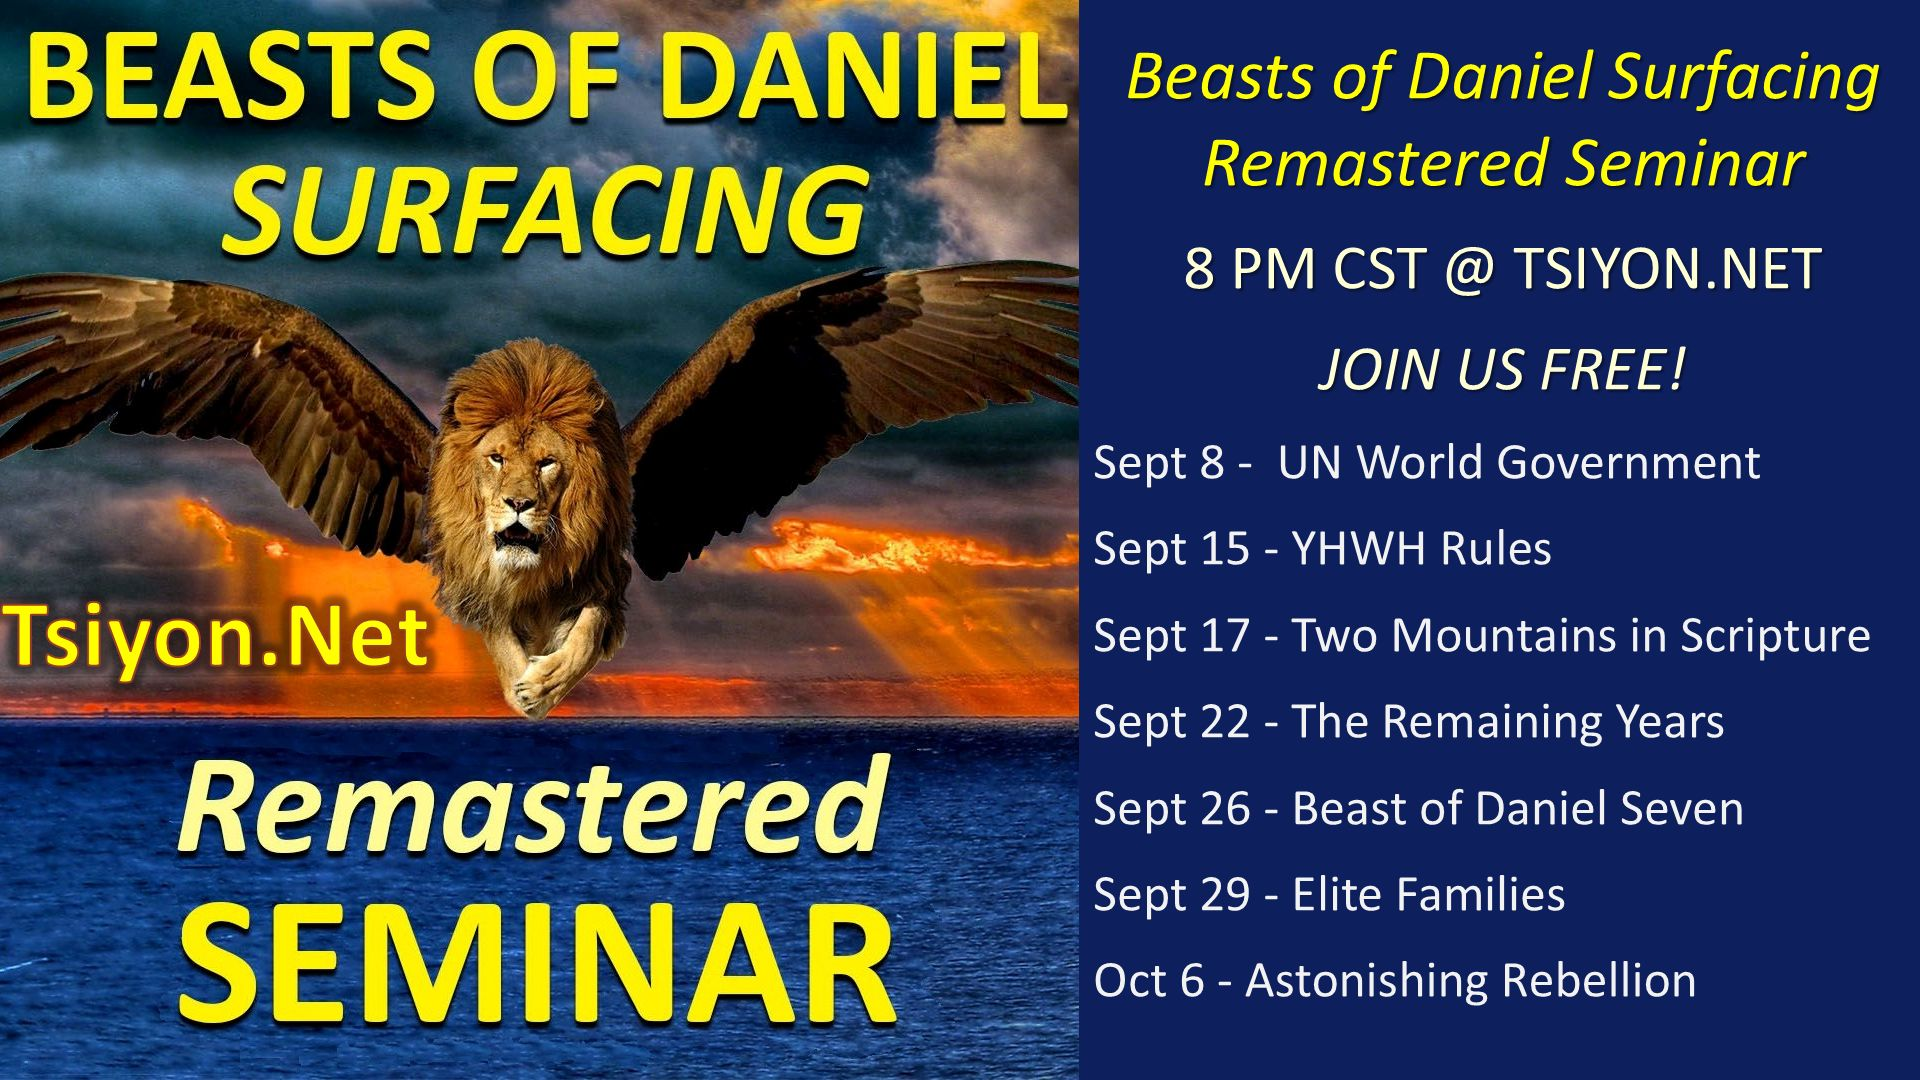 Beasts of Daniel Surfacing and schedule